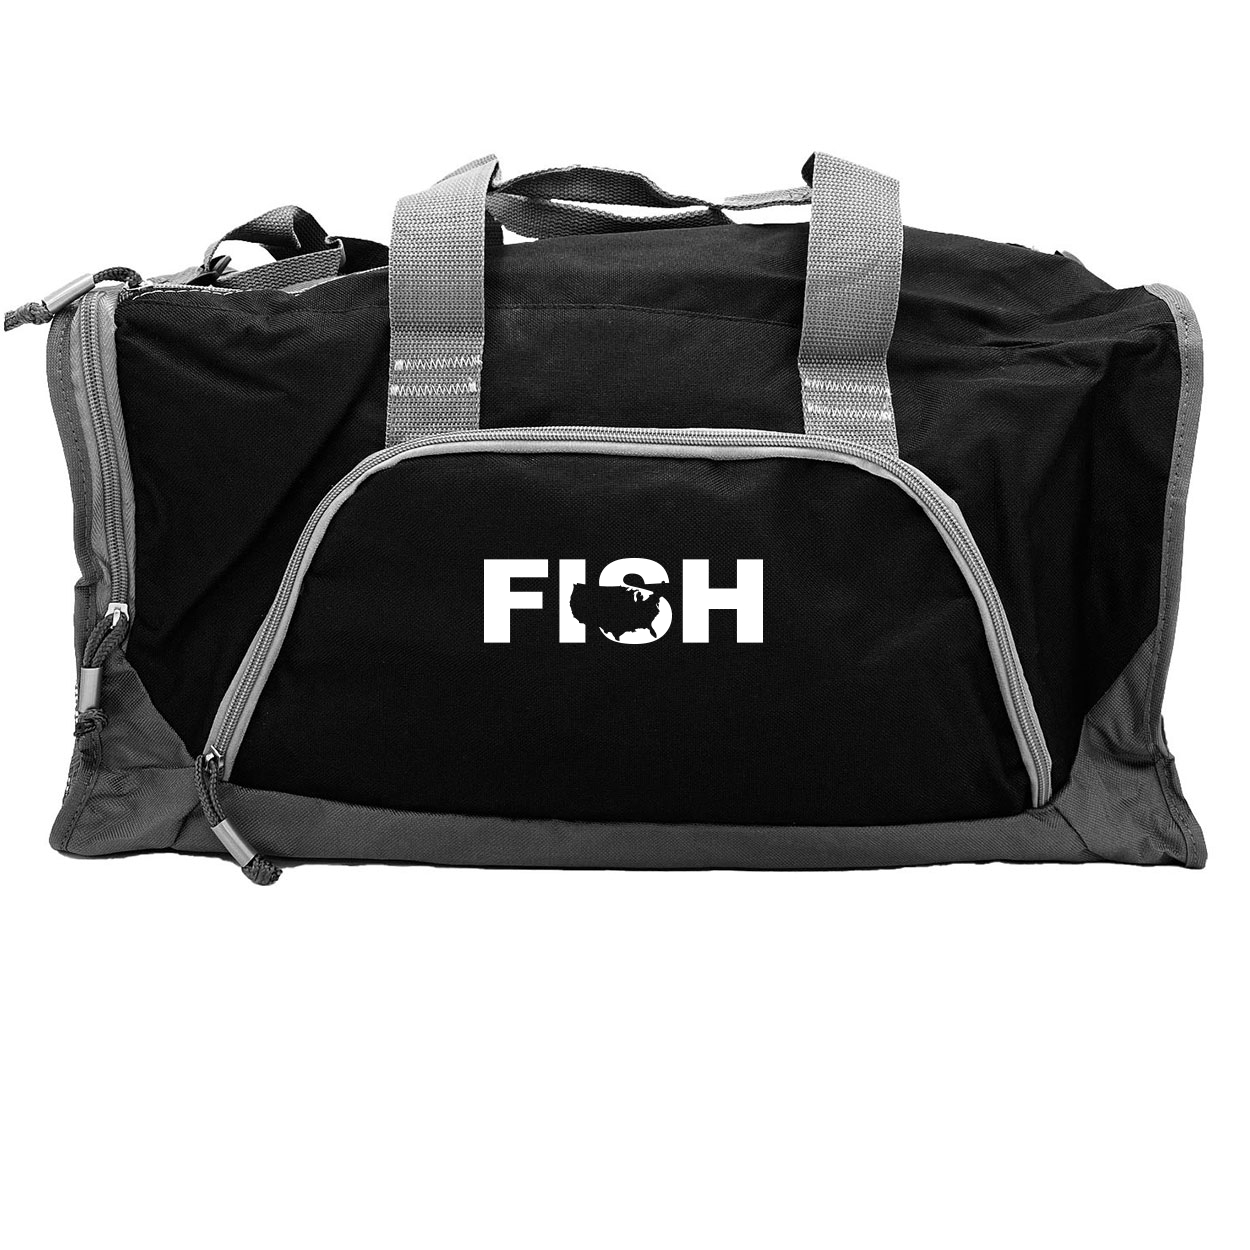 Fish United States Classic Rangeley Sport Duffel Bag Black (White Logo)